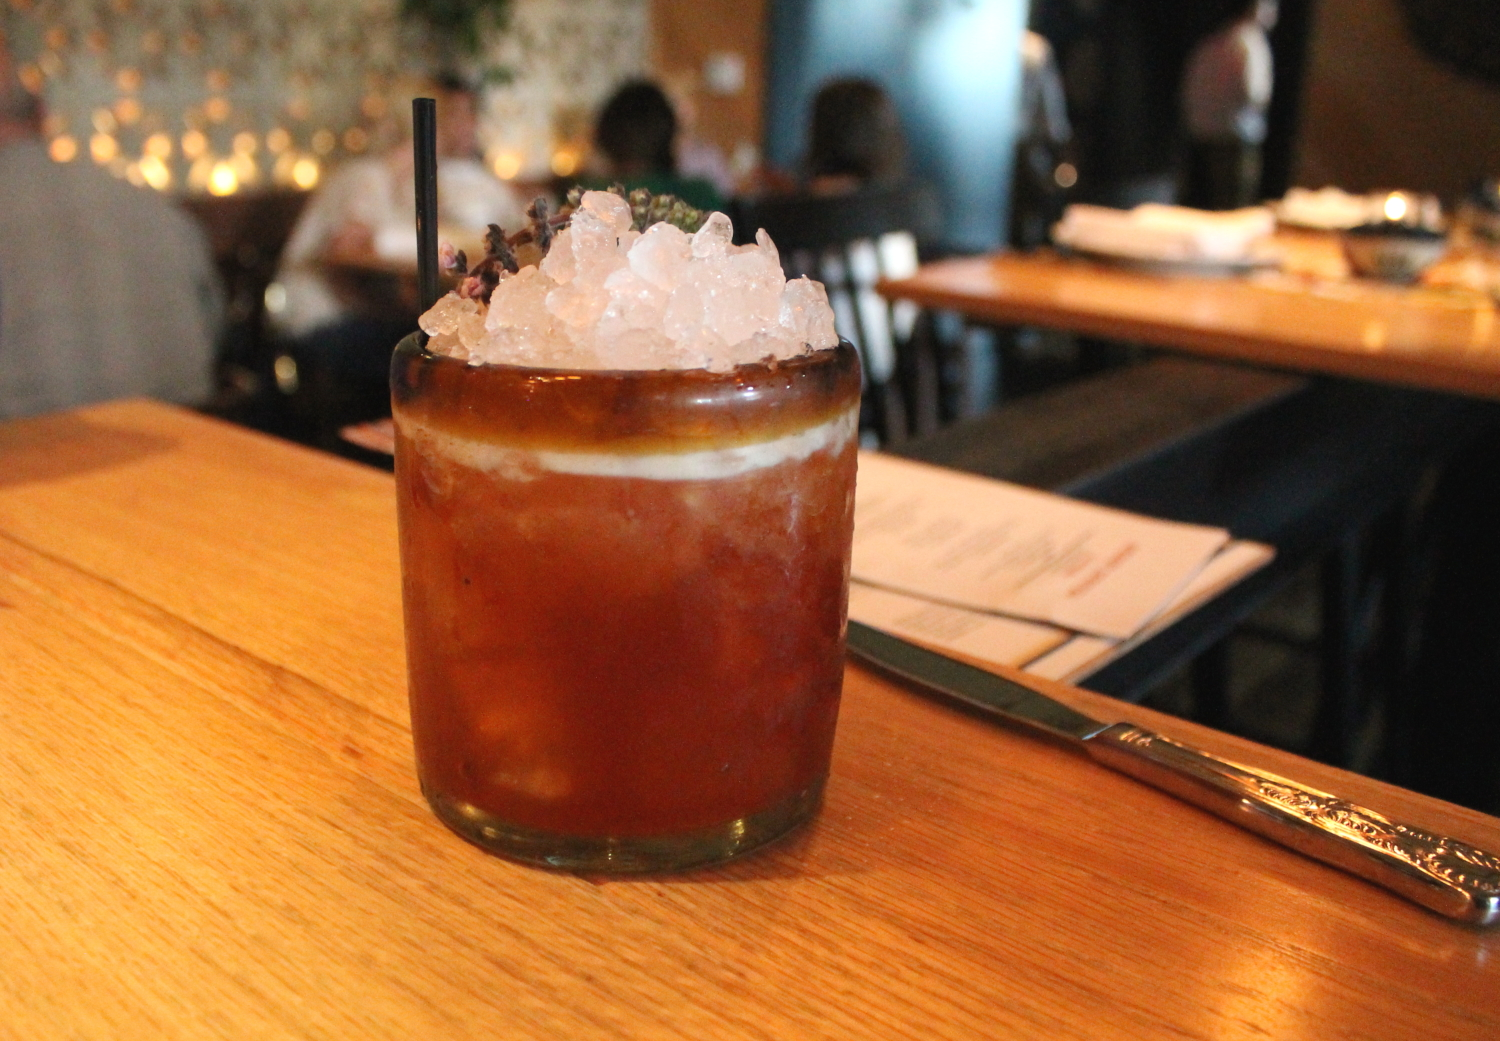 The Surfer Rosa: Pimms No. 1, Ancho Reyes, Lemon, Strawberry Shrub, Basil Flower.